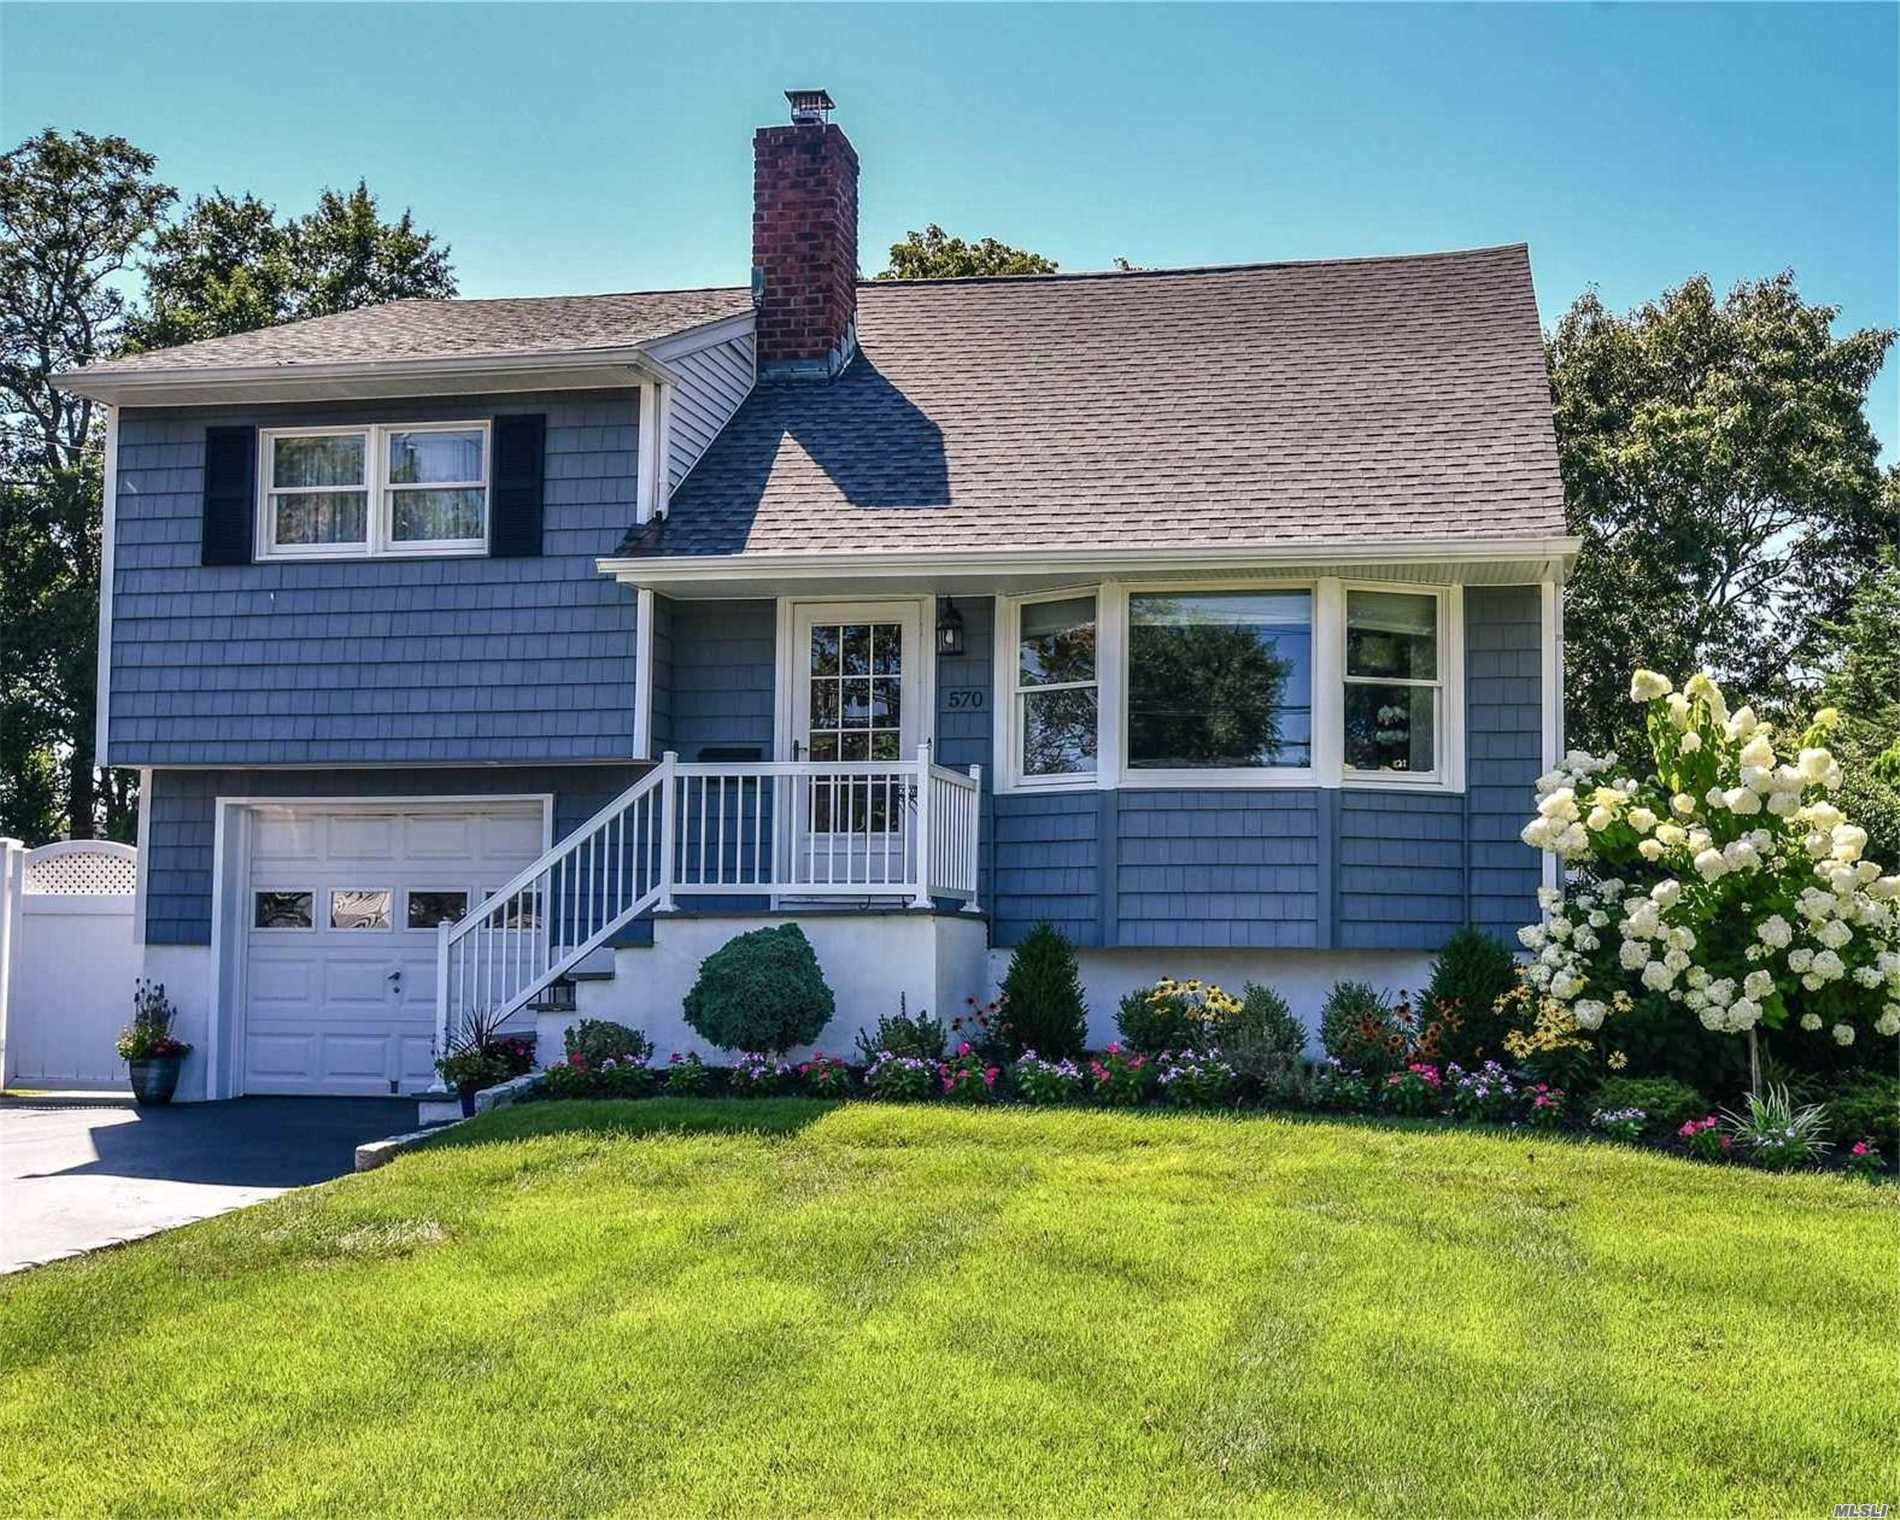 570 Peter Paul Dr, West Islip, NY 11795 - MLS#: 3239566